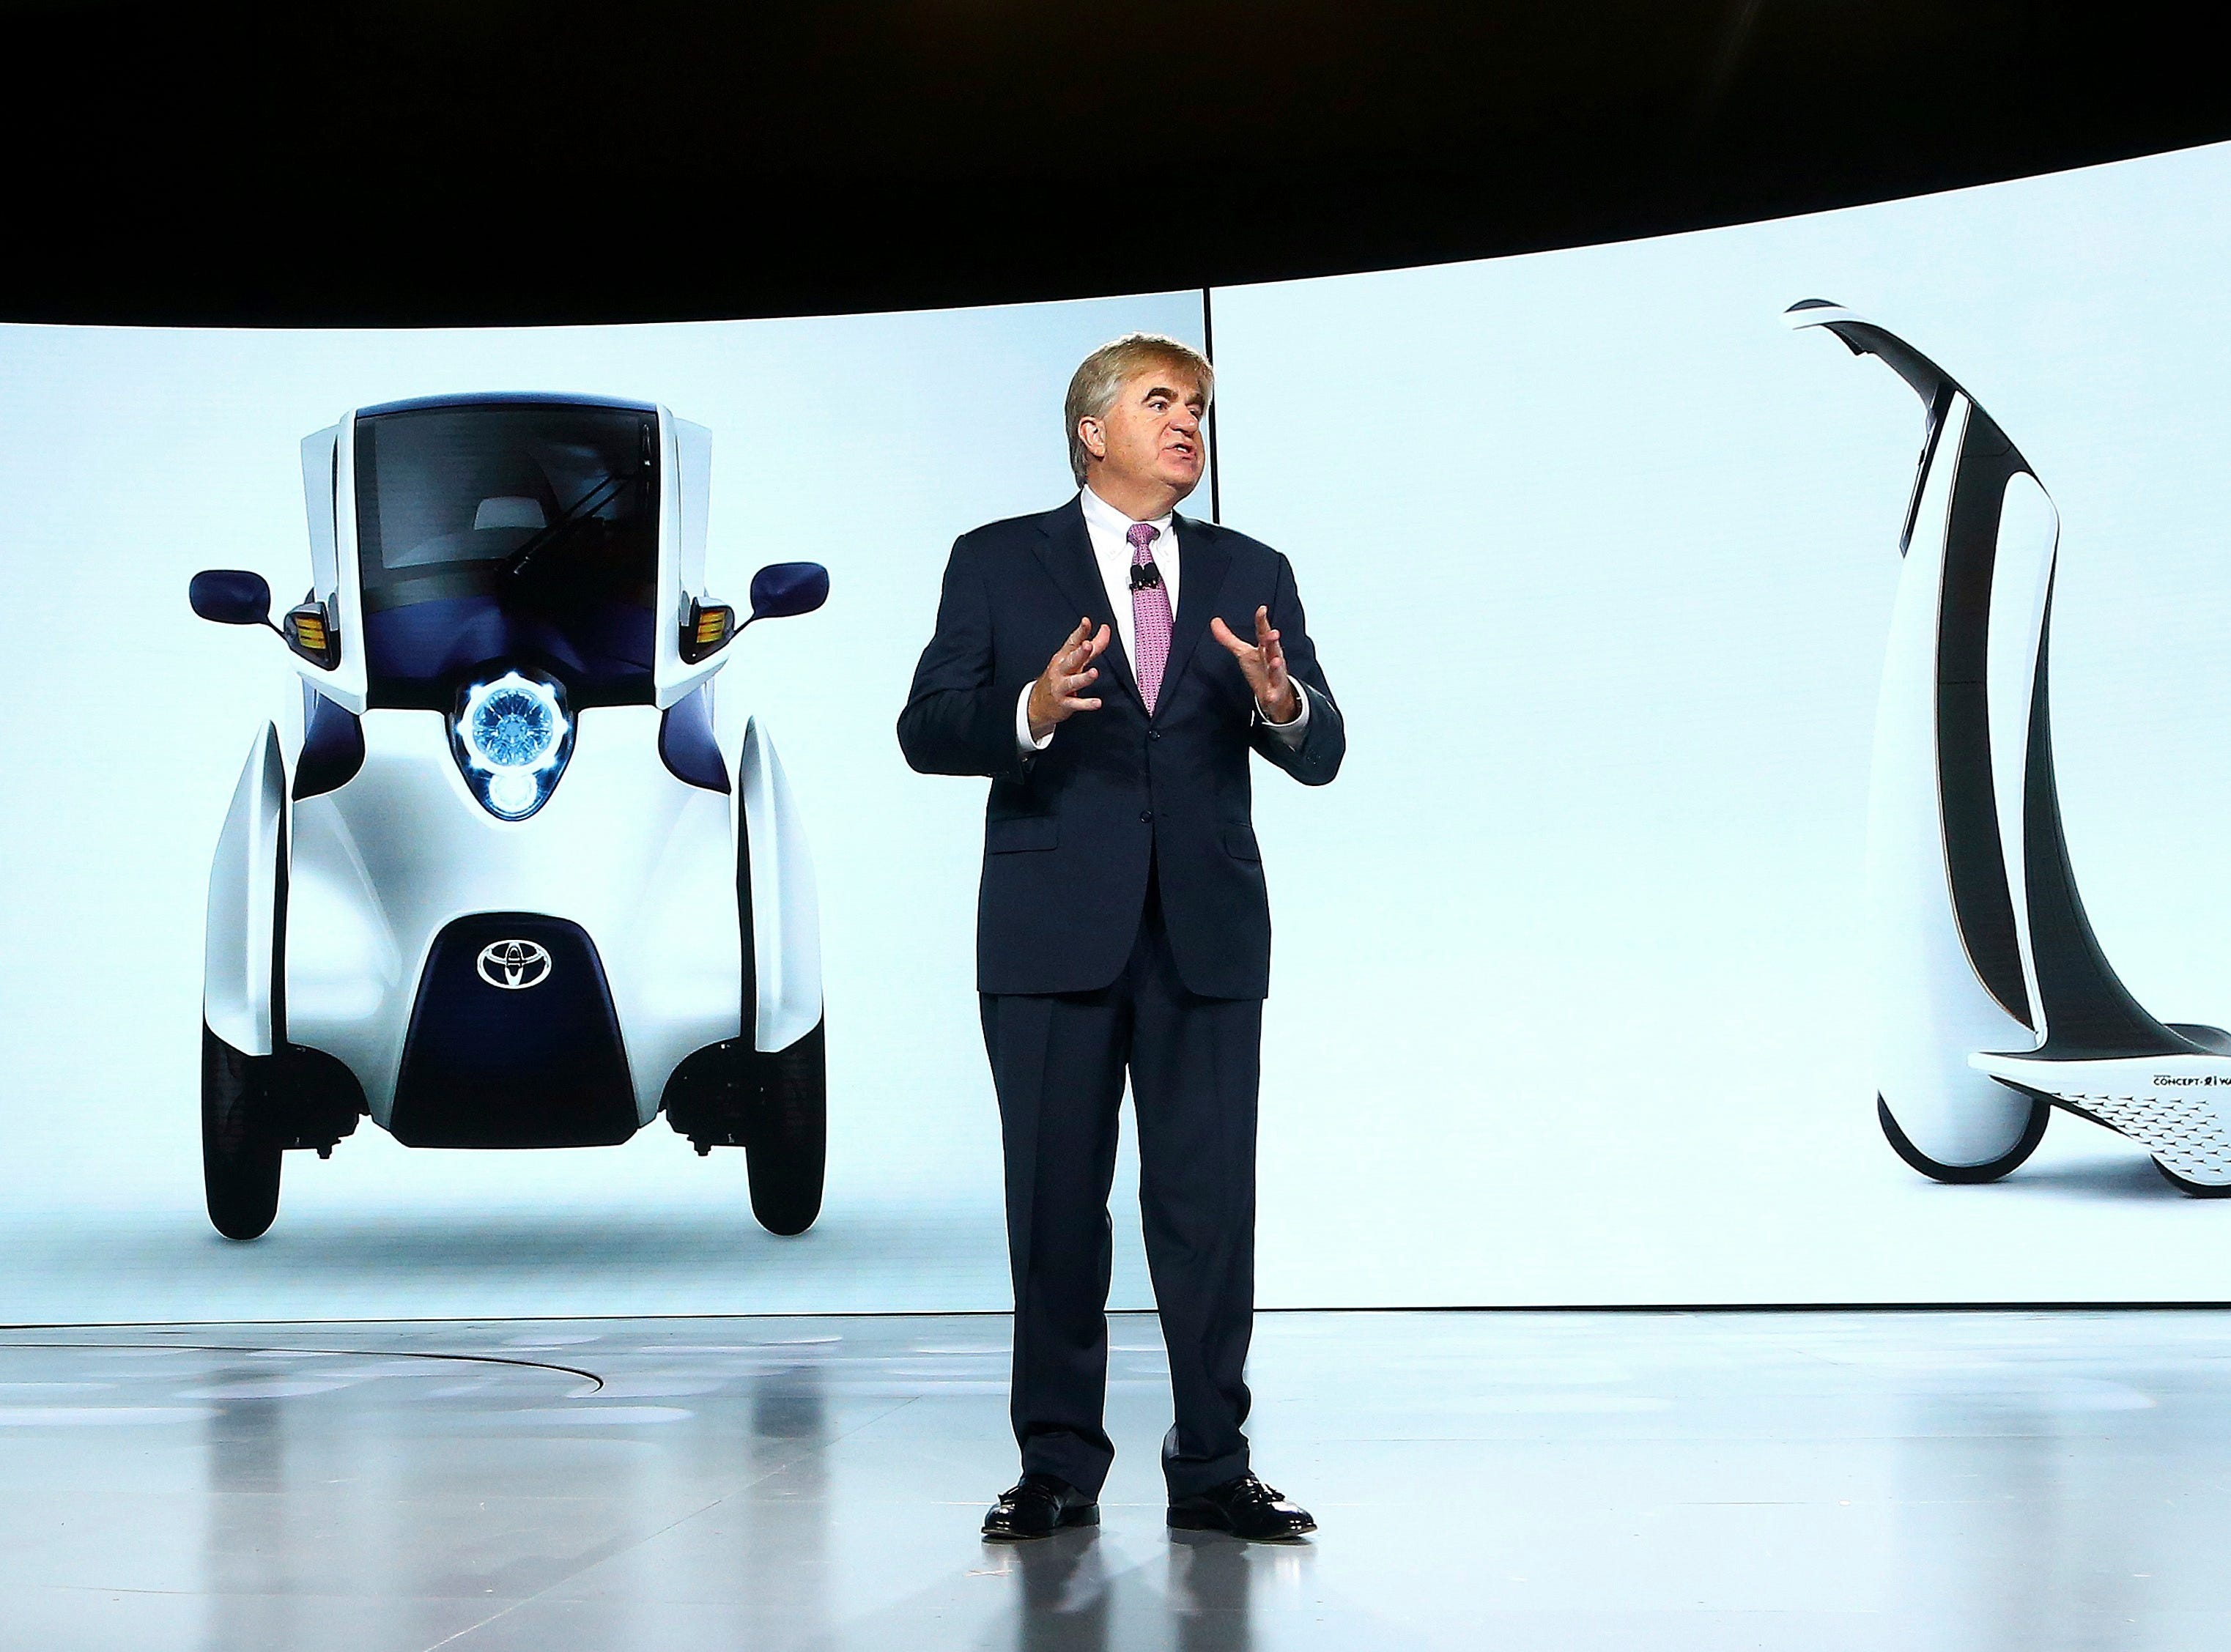 Bob Carter, executive vice president of Toyota, talks about future products at the Toyota news conference at CES International on Monday, Jan. 7, 2019, in Las Vegas.